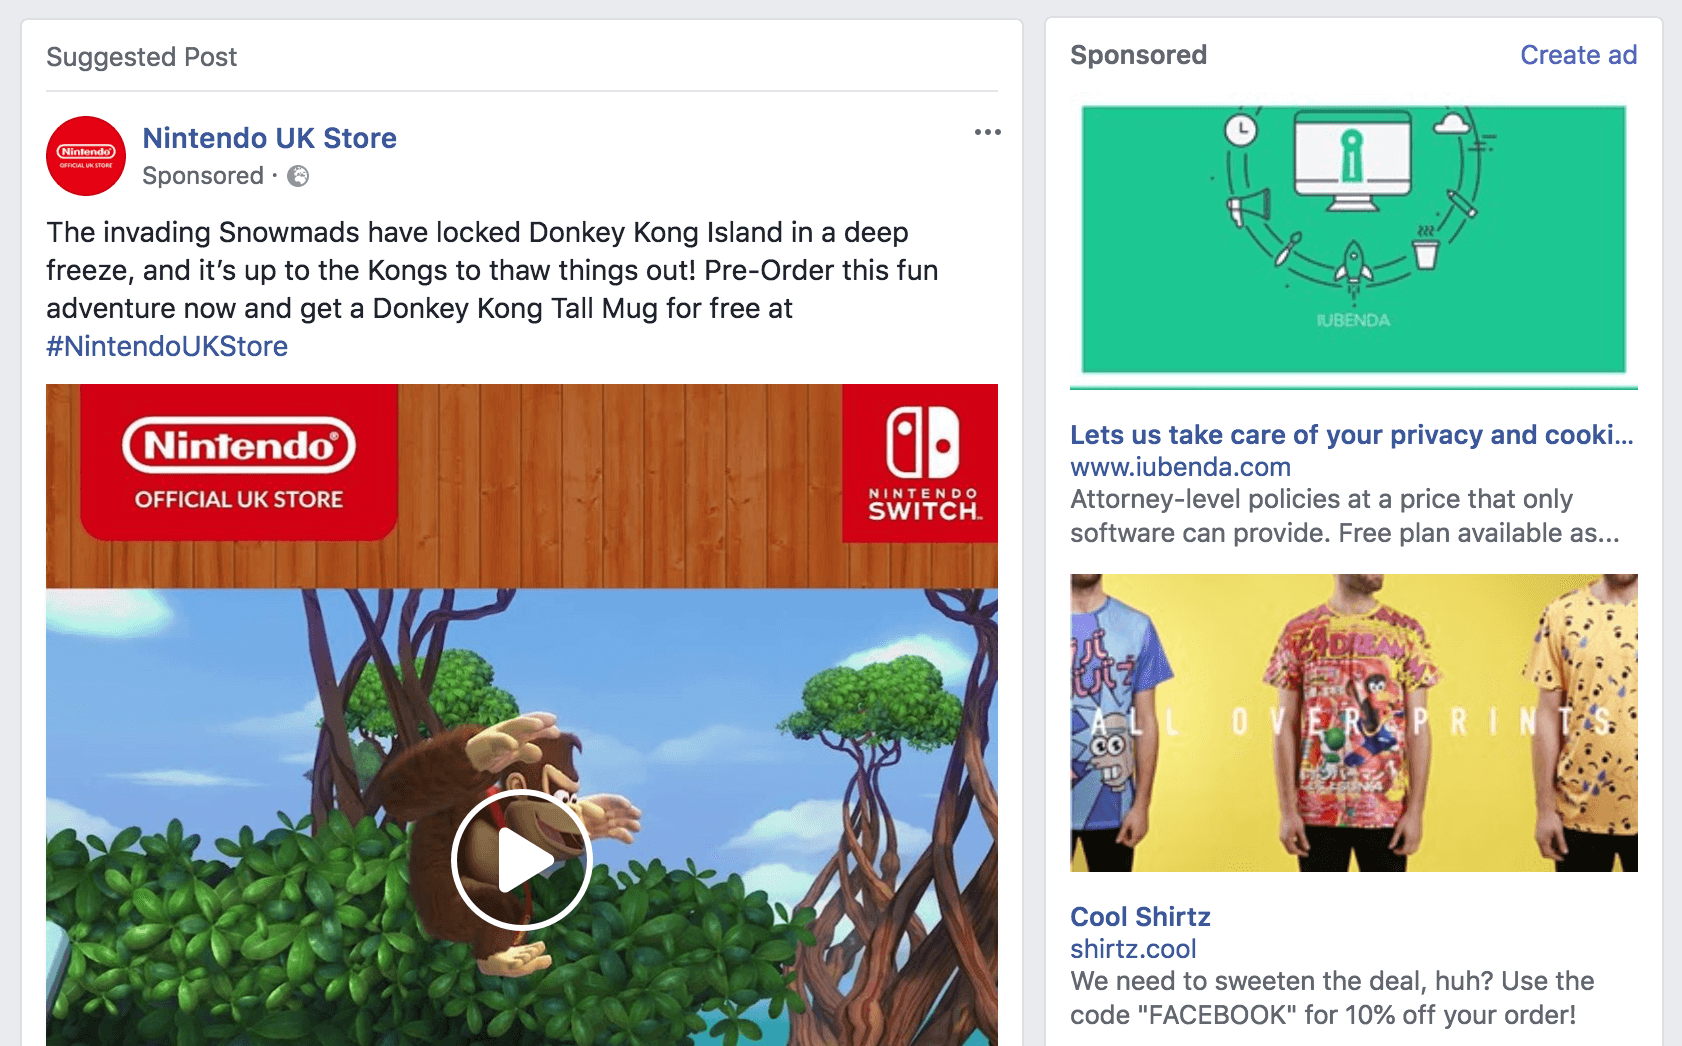 Three examples of adverts on Facebook.